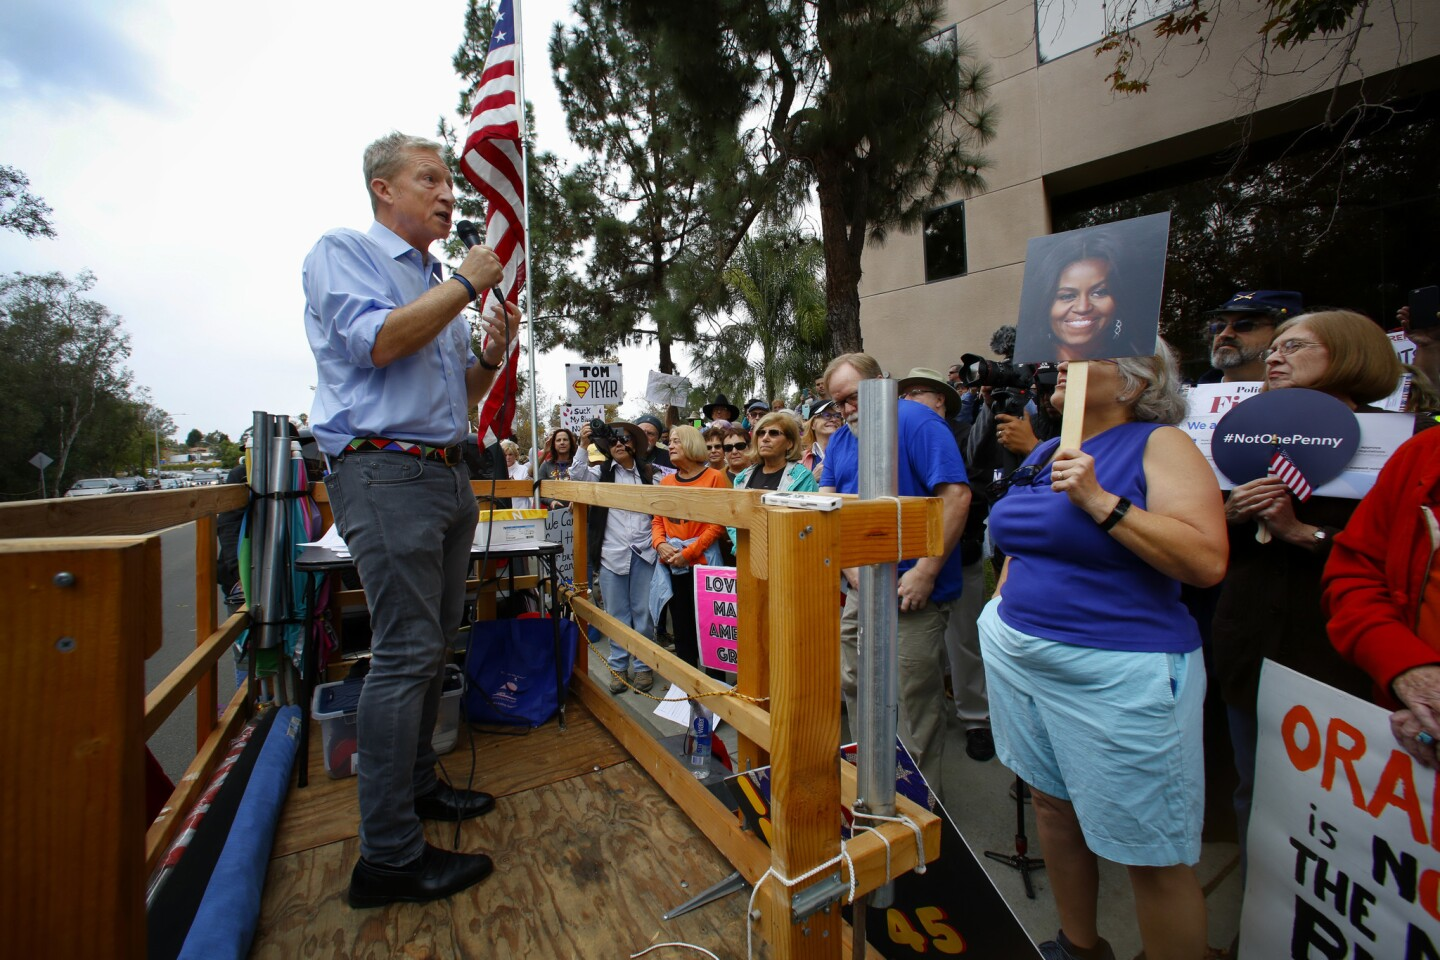 Weekly protest at Darrell Issa's Vista office